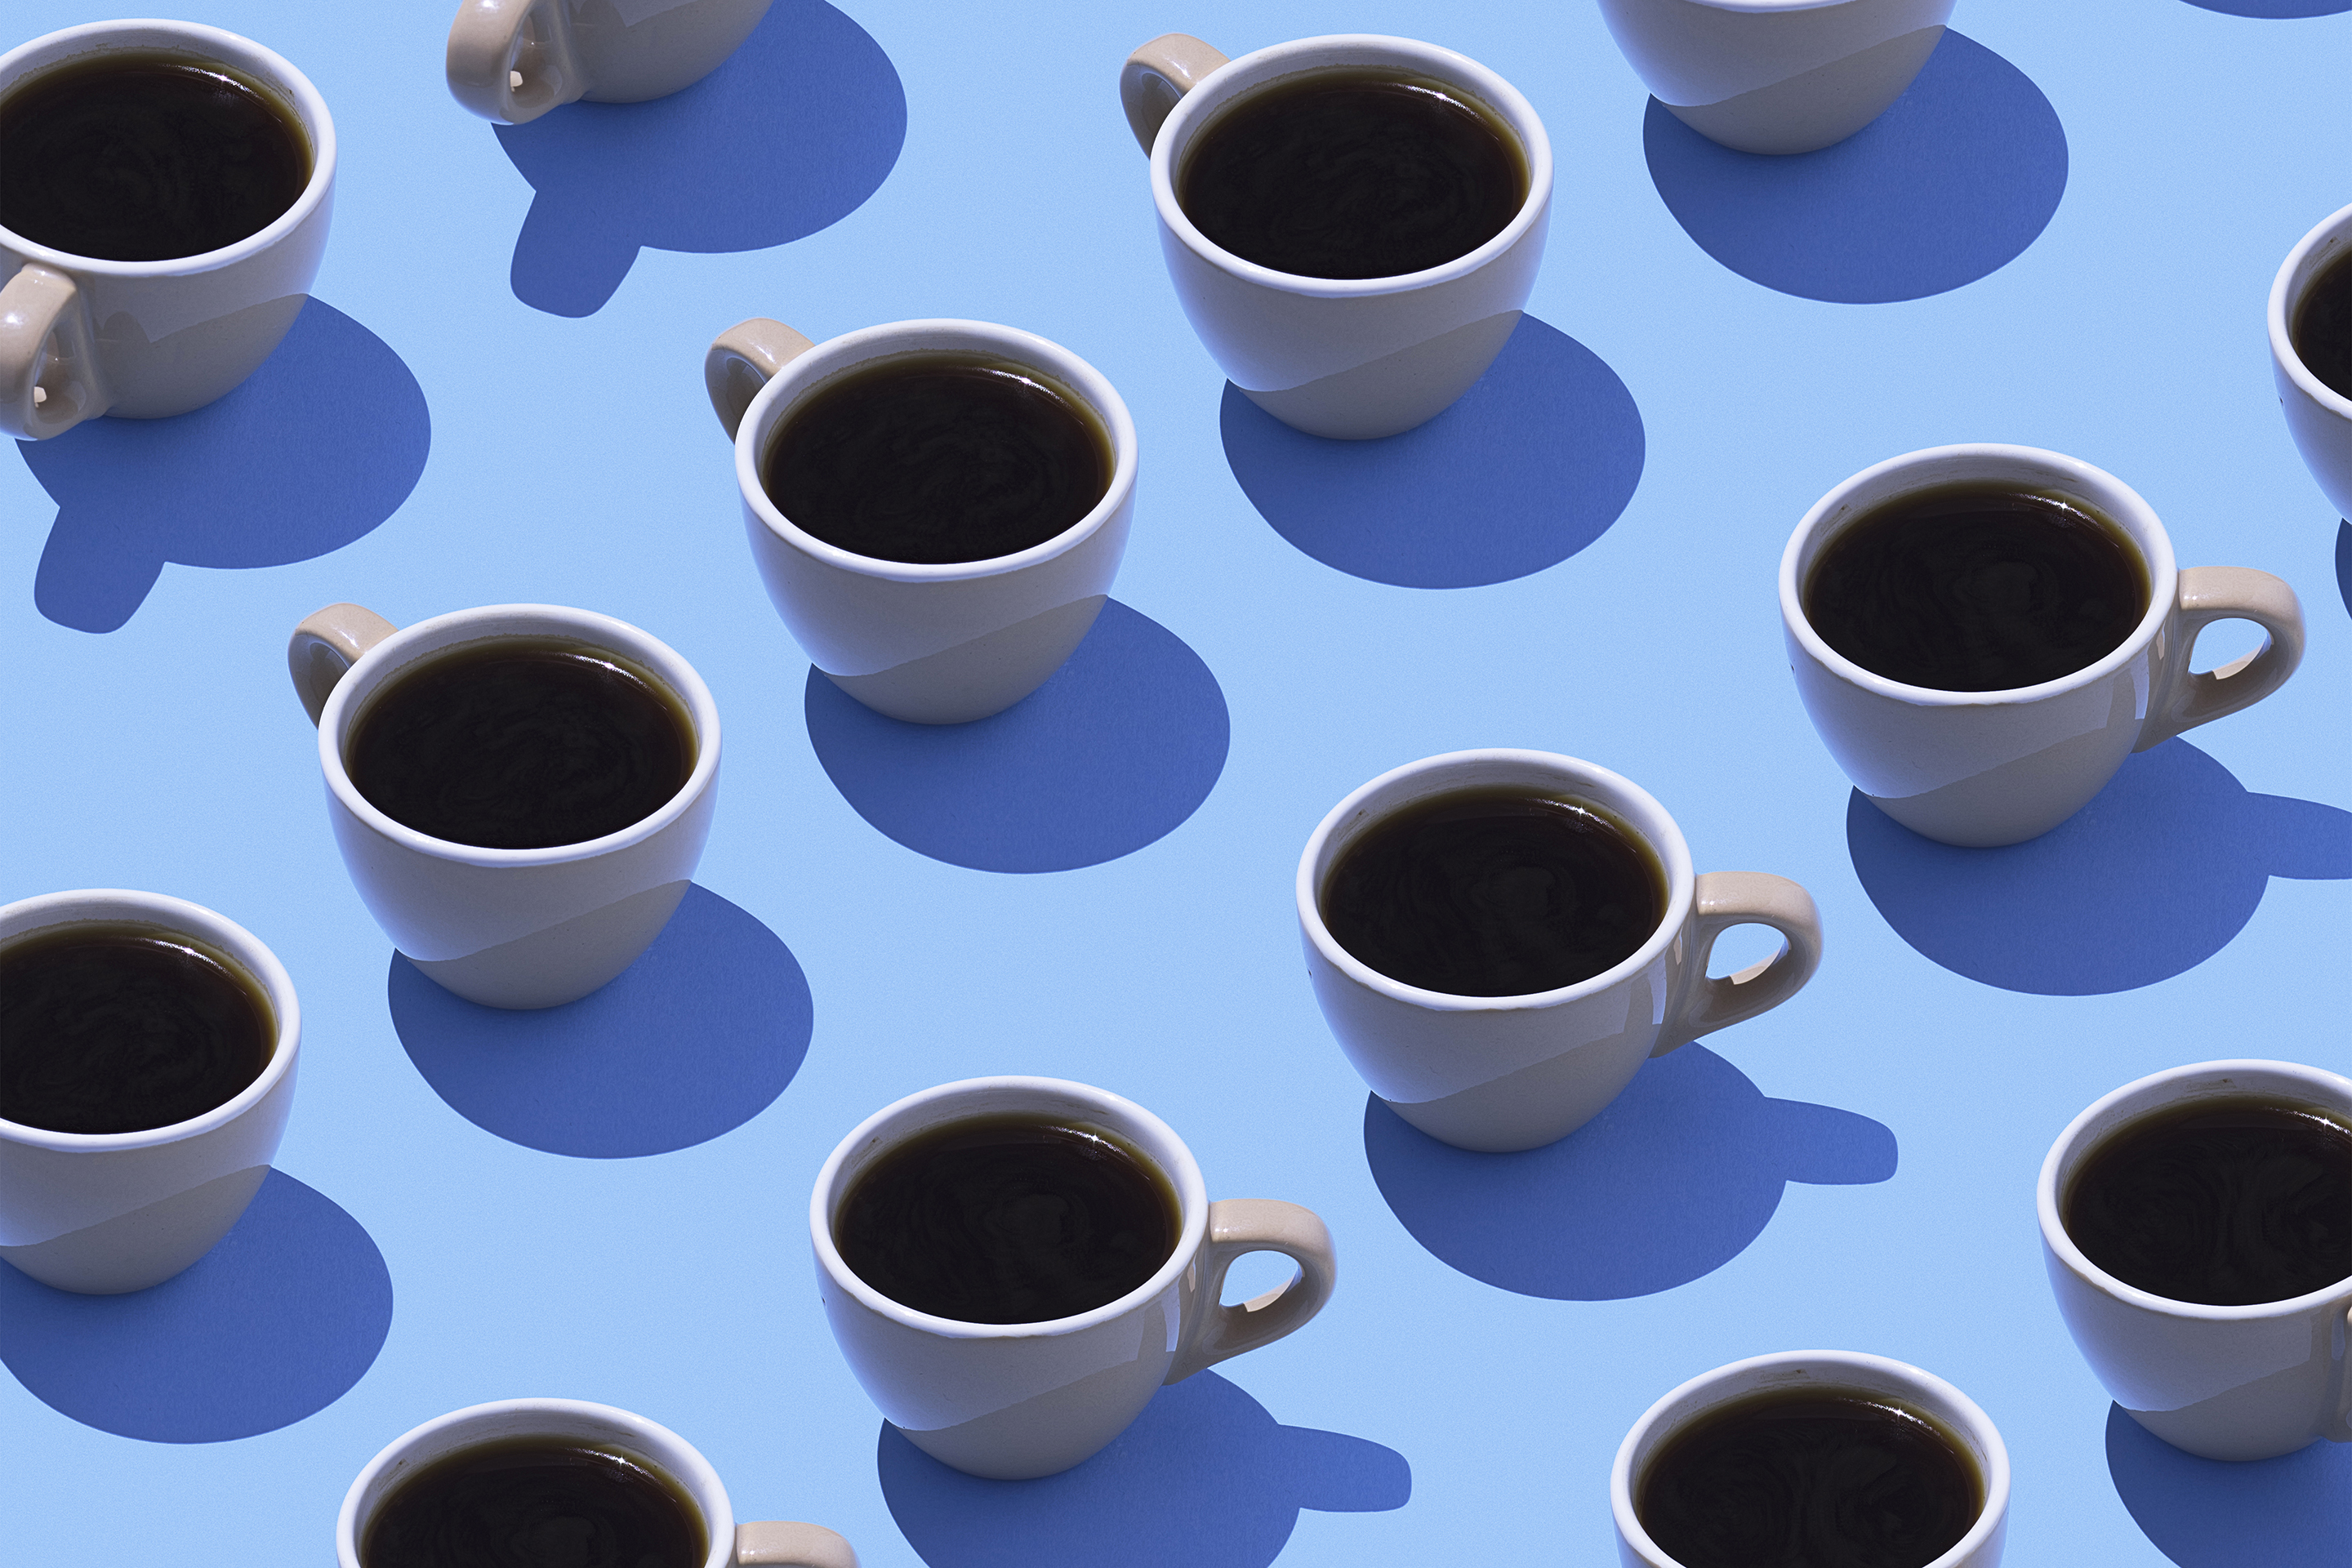 cups of coffee pattern